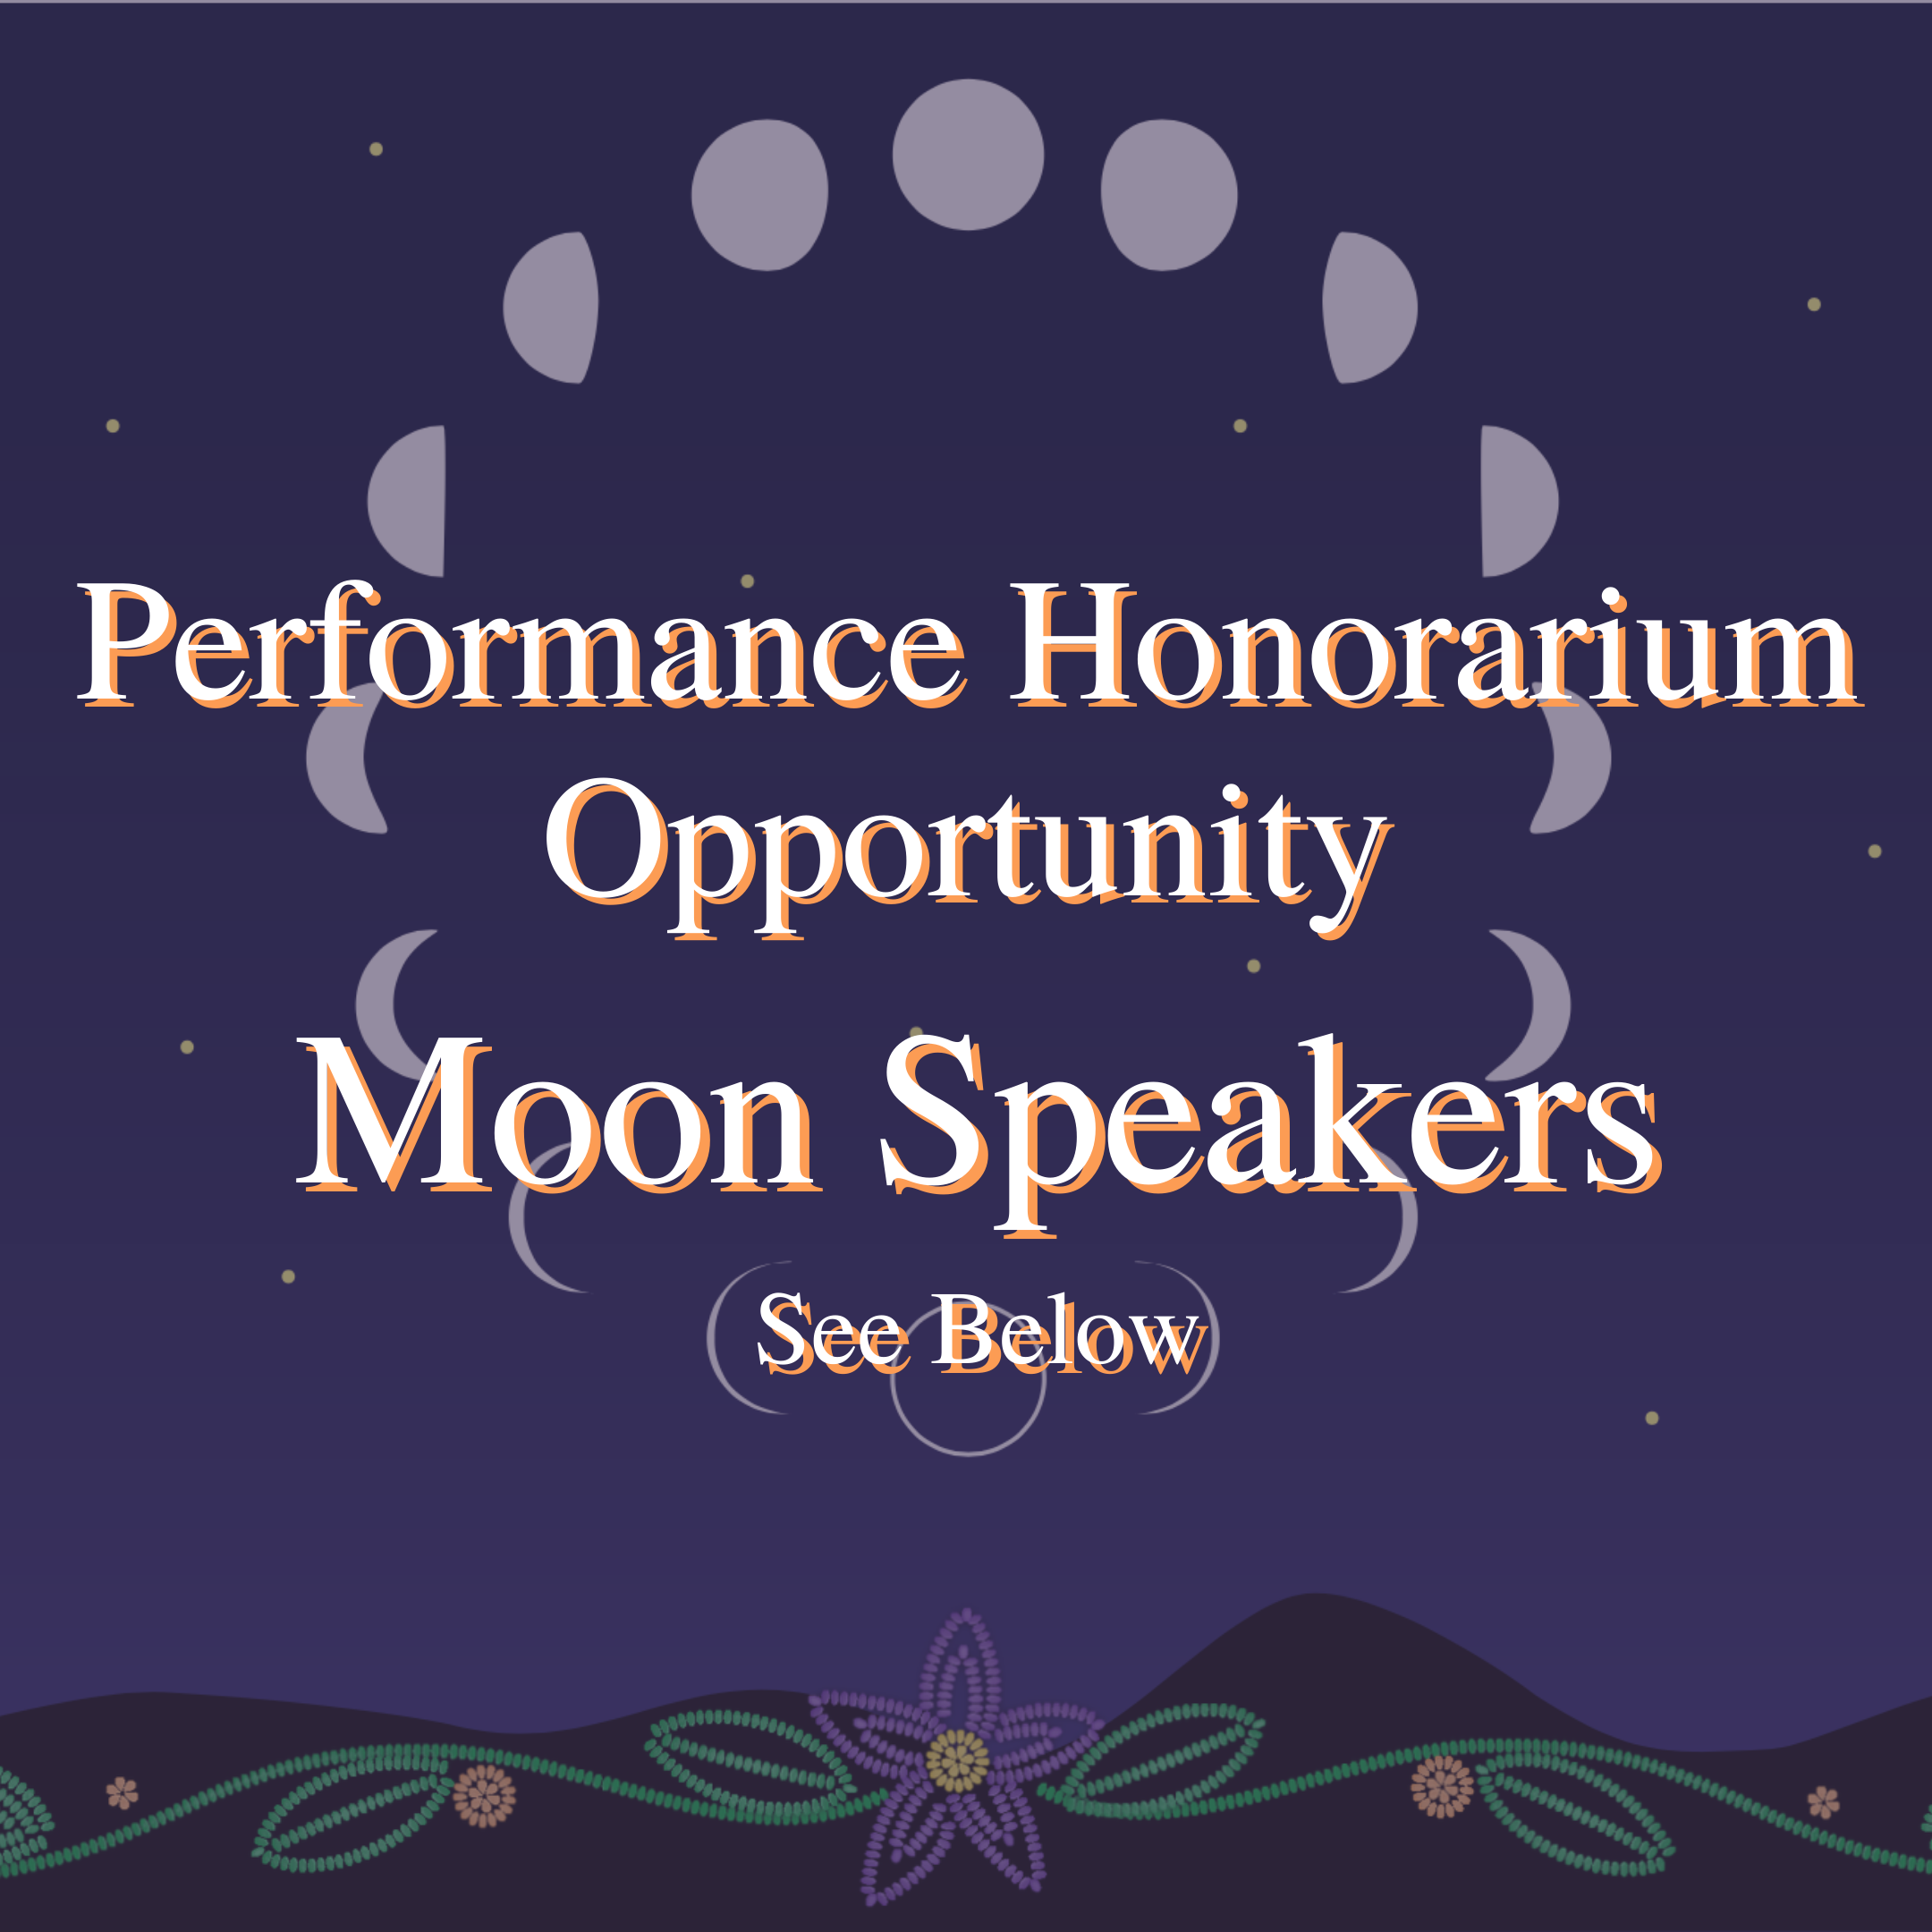 Purple hue overlays, illustrated phases of the moon in a circle, on a blue starry background, with beaded green leaves and a purple beaded flower on a black waved border on the bottom of the image, with the words Performance Honorarium Opportunity Moon Speakers.